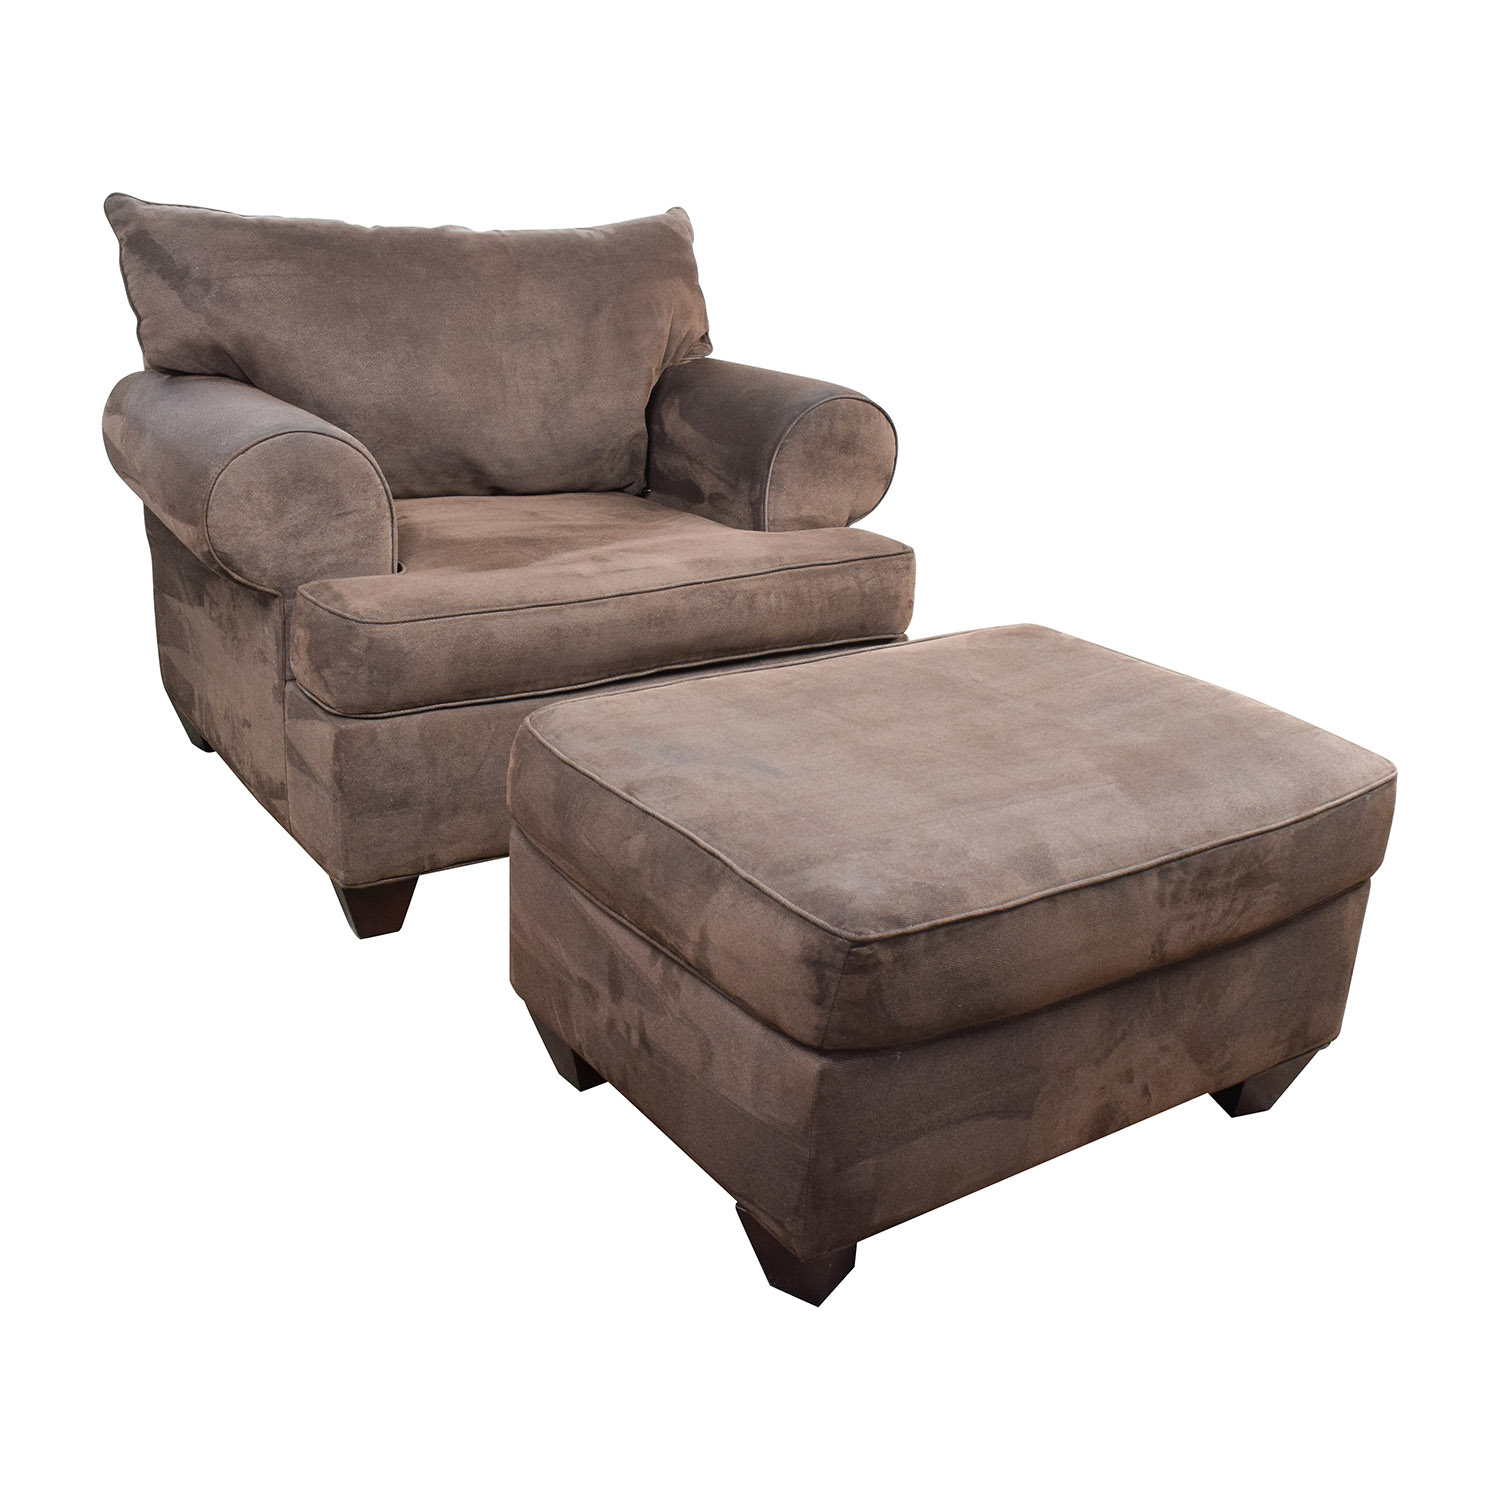 67 OFF  Dark Brown Sofa Chair with Ottoman  Chairs